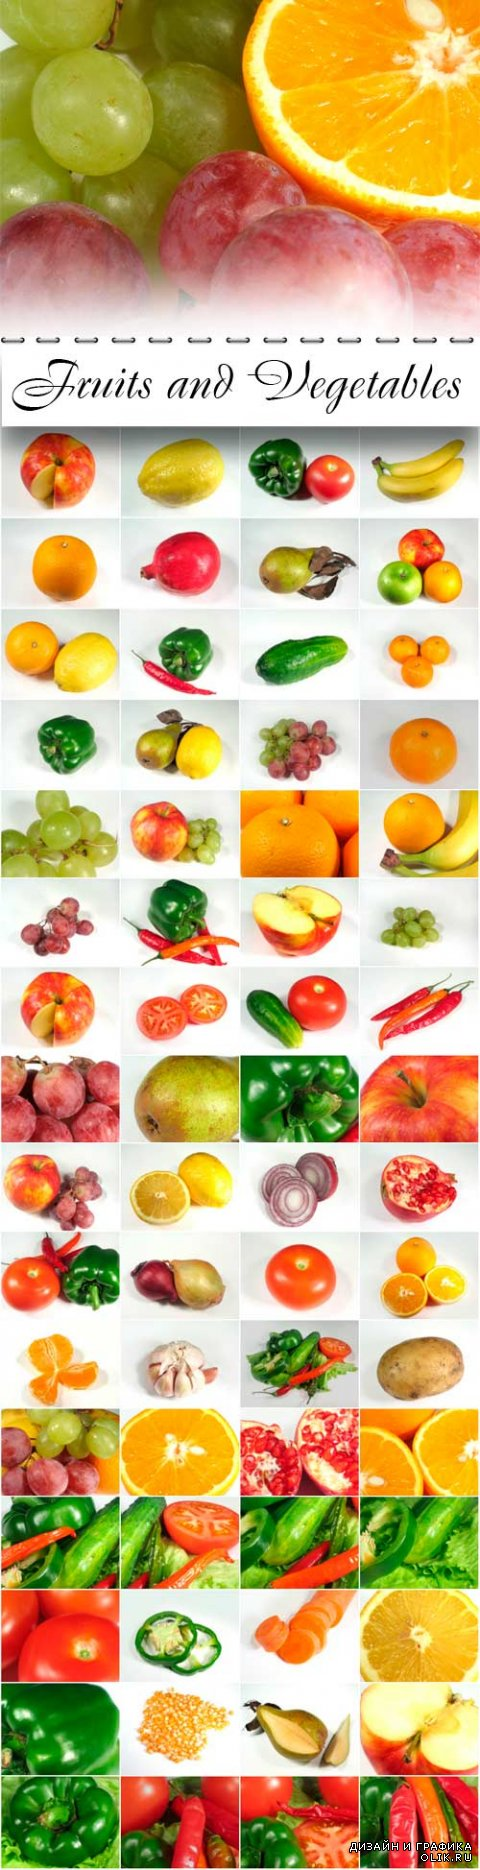 Fruits and Vegetables Photo Cliparts